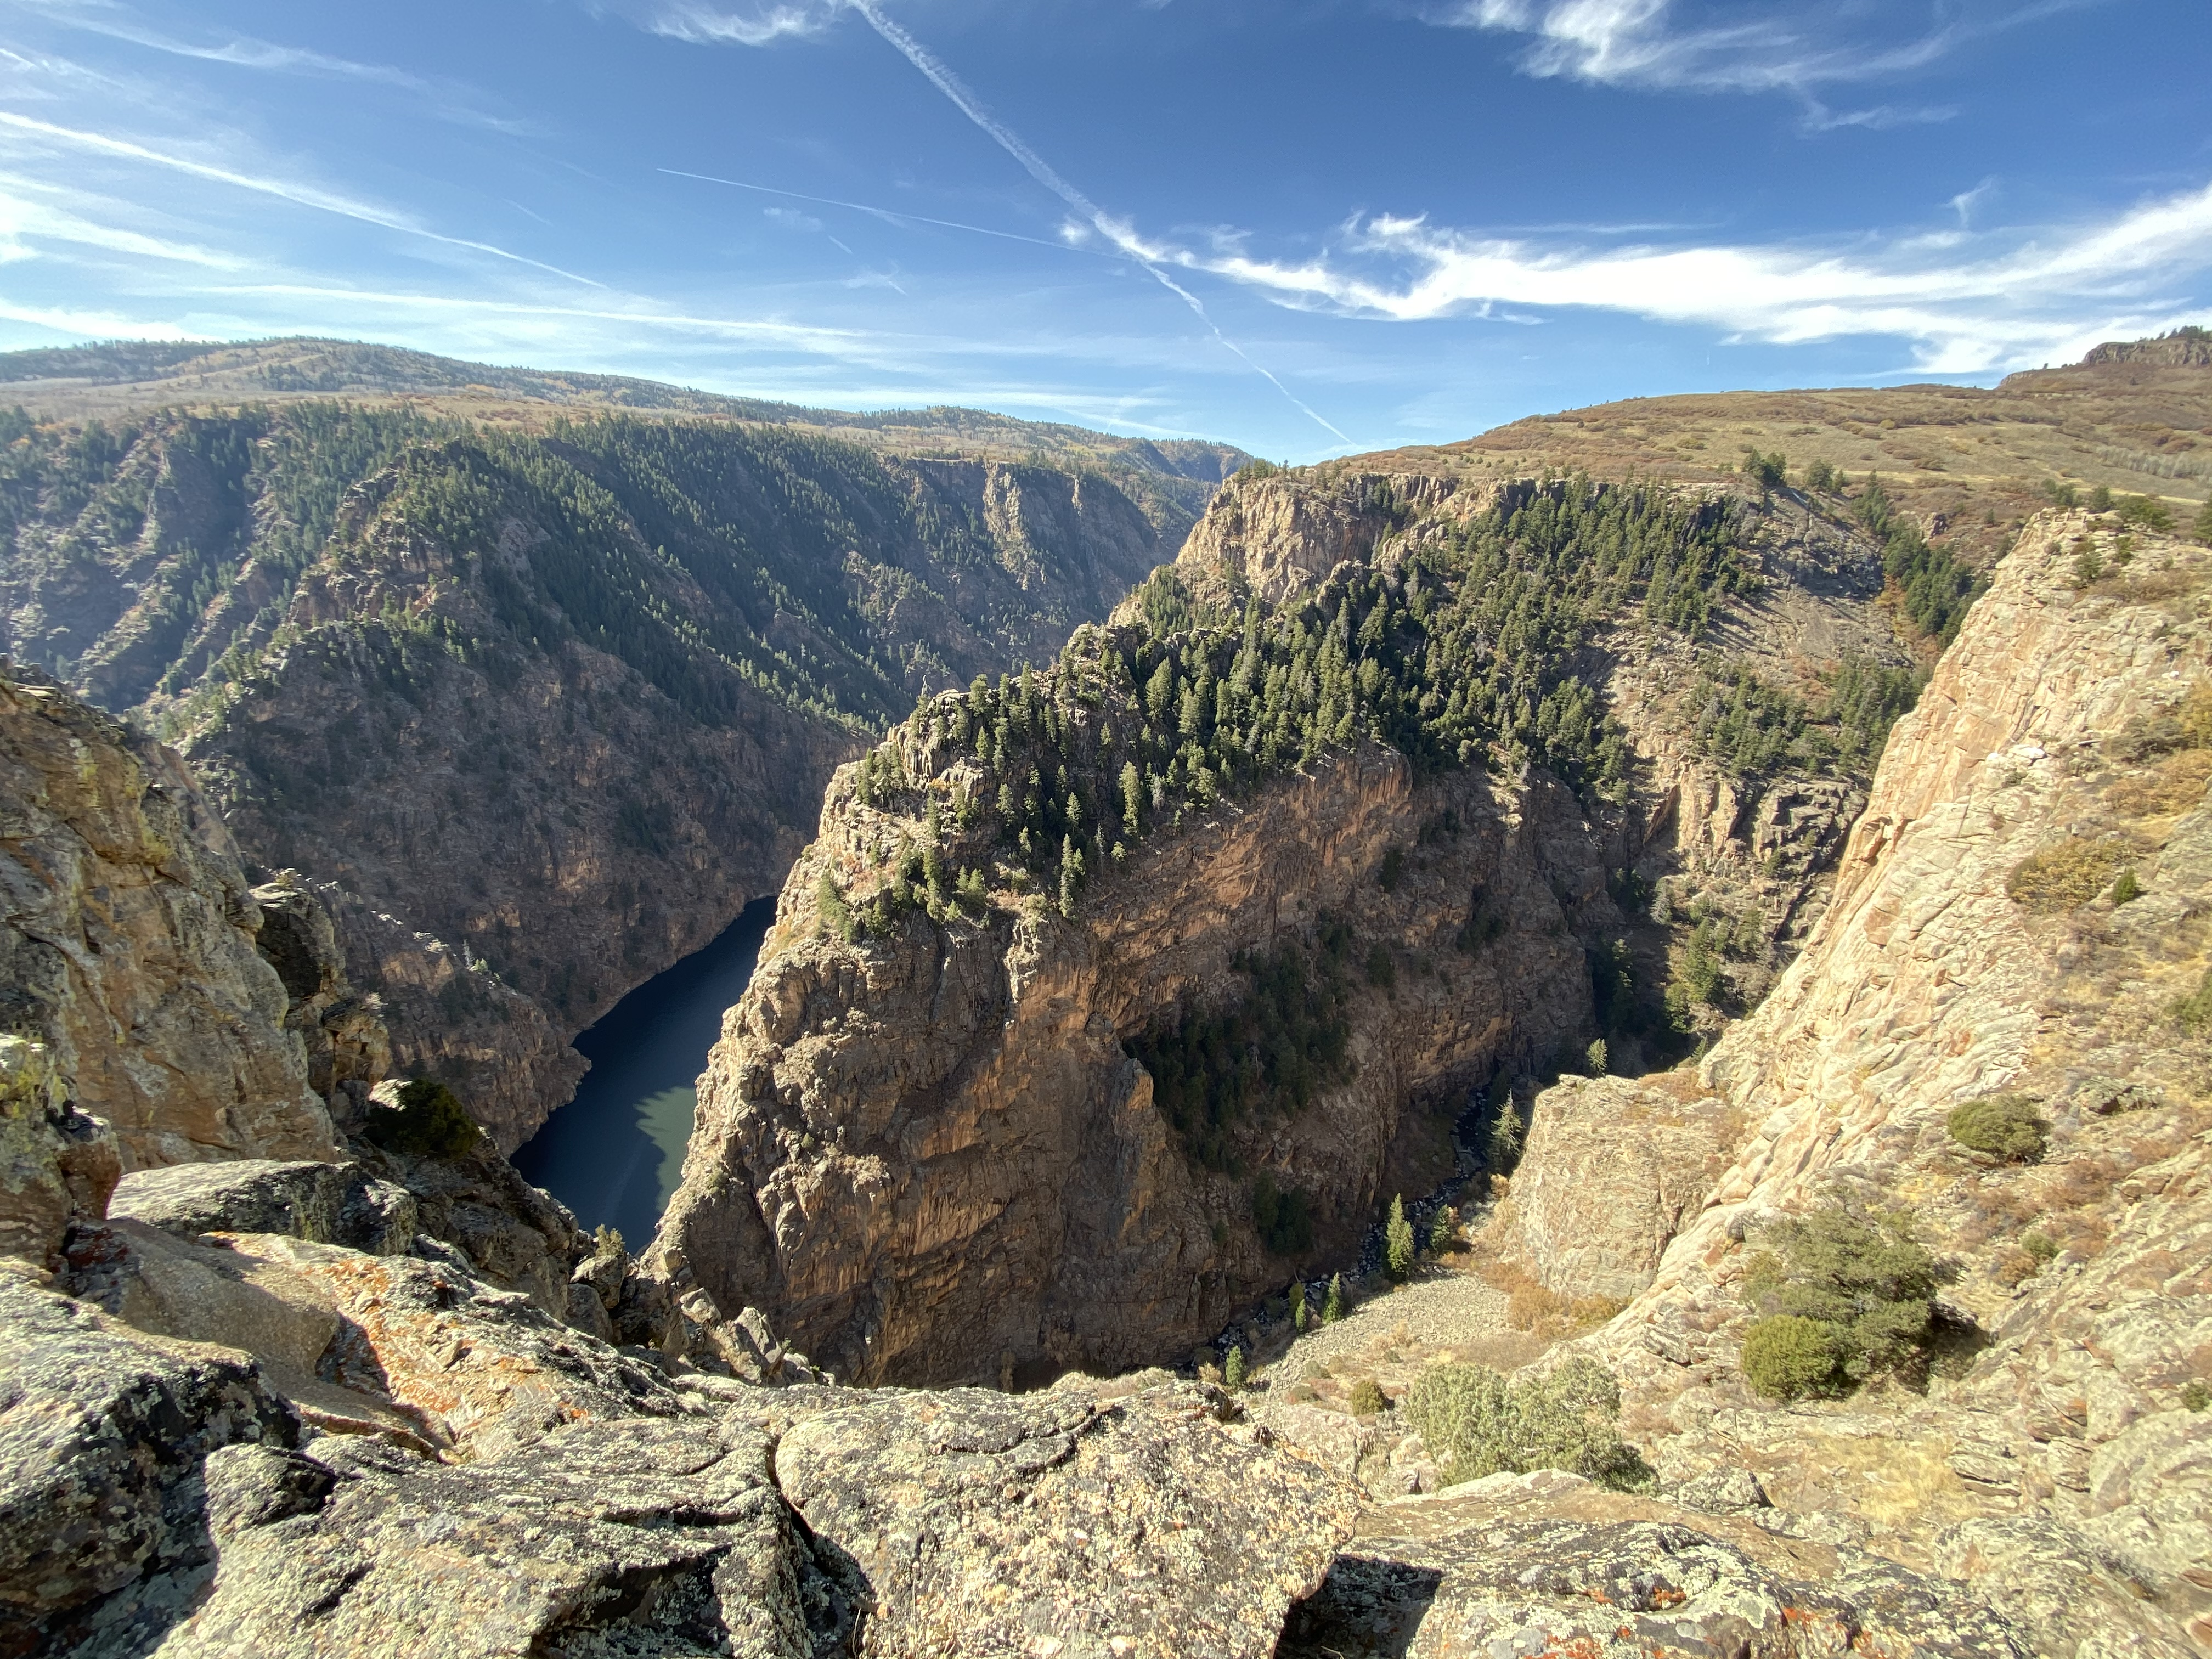 Looking downriver from the Pioneer Point overlook.